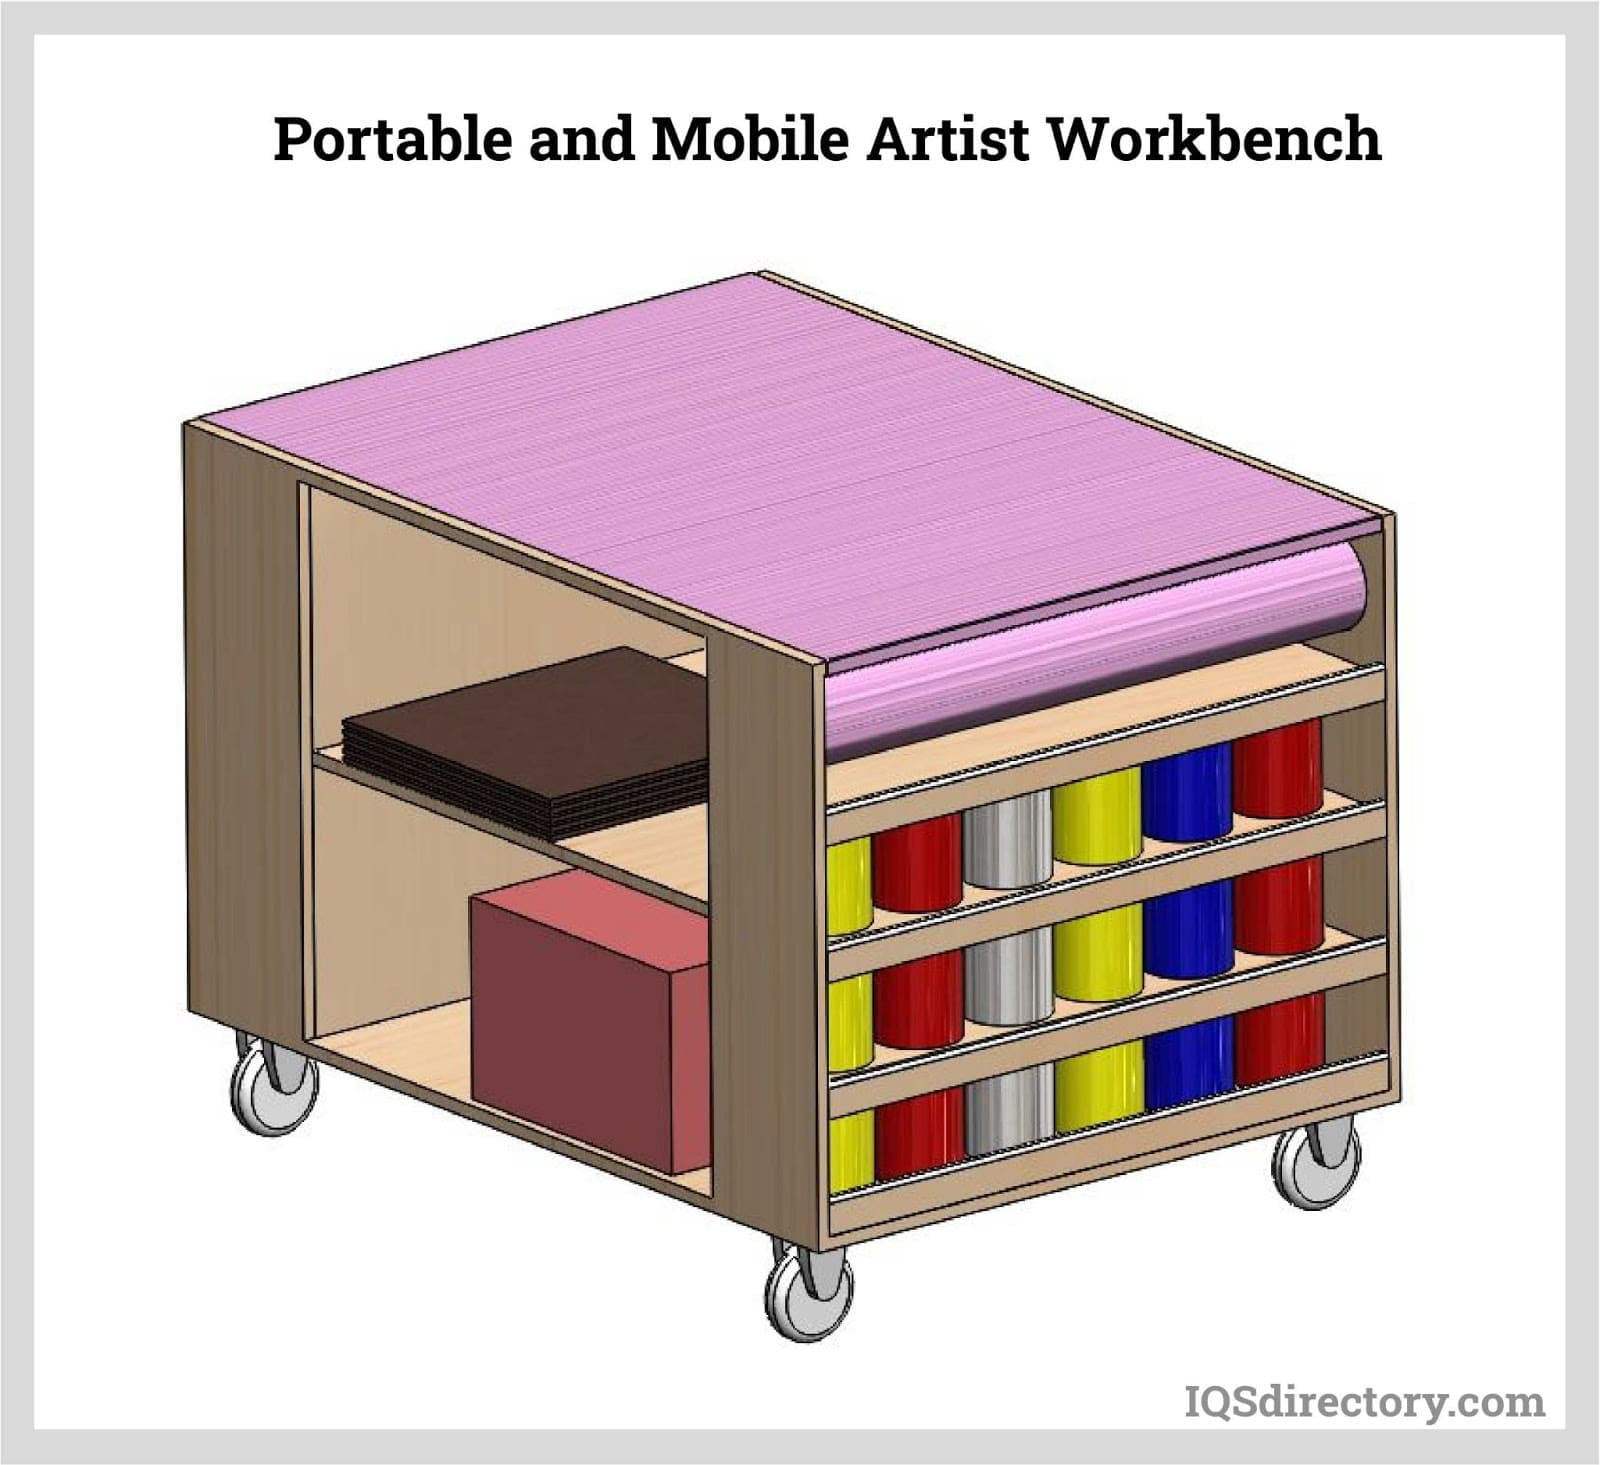 Portable and Mobile Artist Workbench